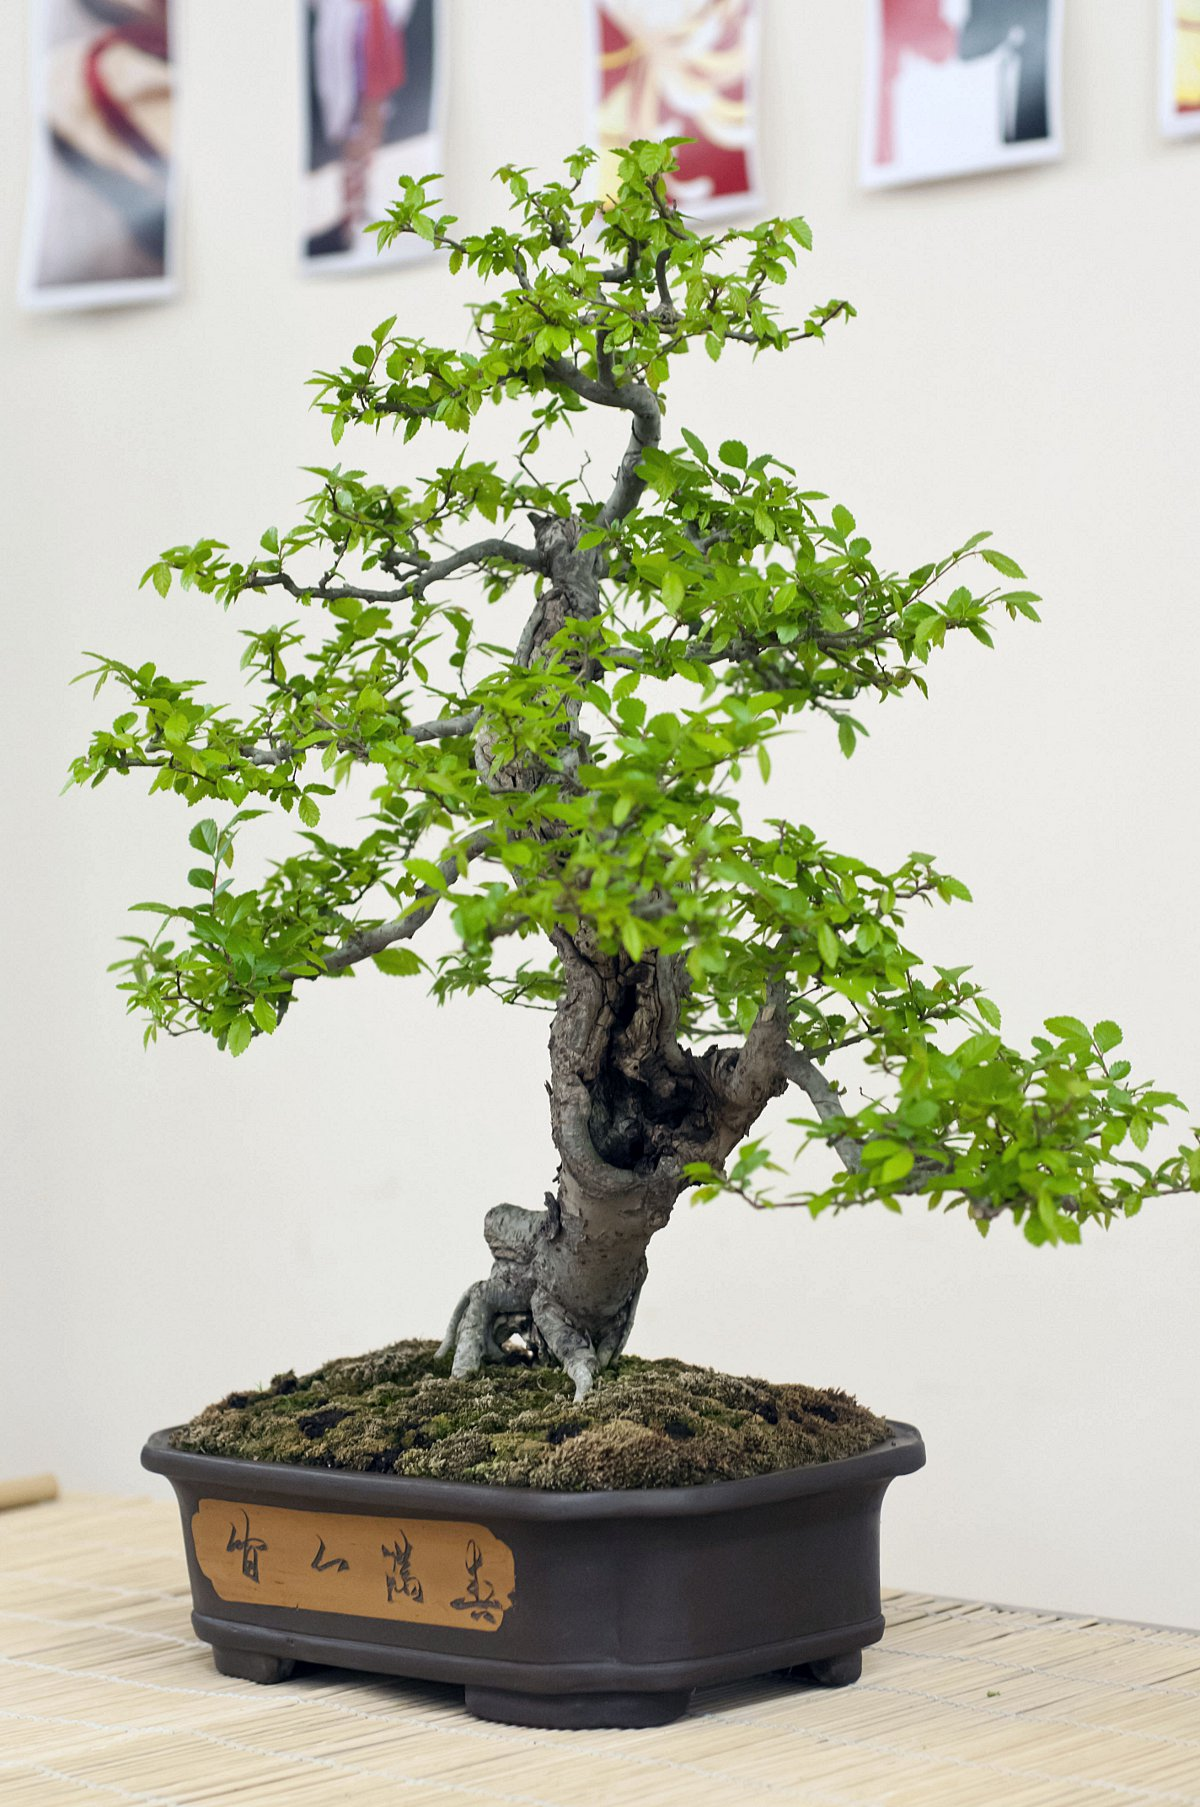 Society set for Bonsai exhibition